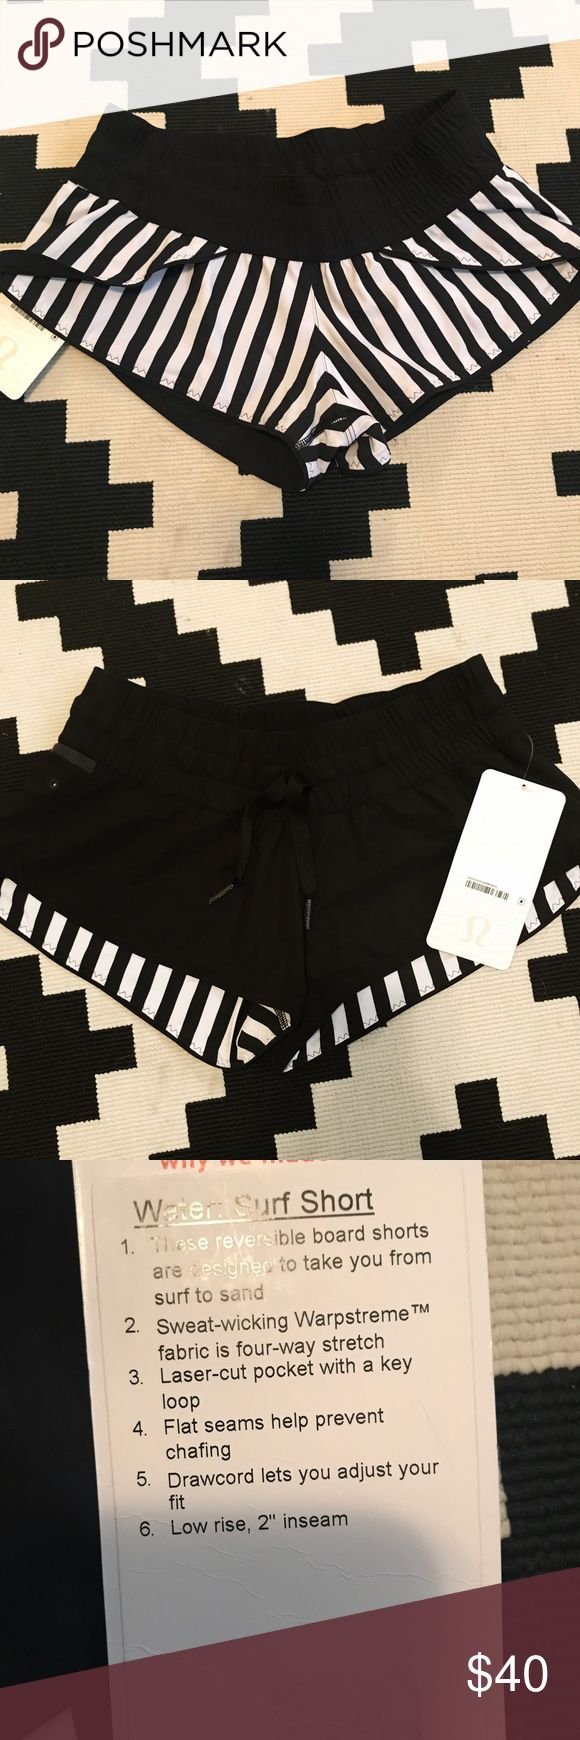 🍋lululemon NWT water surf short NWT size 4 plain black, reversible to black and white striped side. Sweat-wicking warpestream fabric. Laser cut pocket with key loop. Designed to take you from surf to sand. Always open to offers!! lululemon athletica Shorts